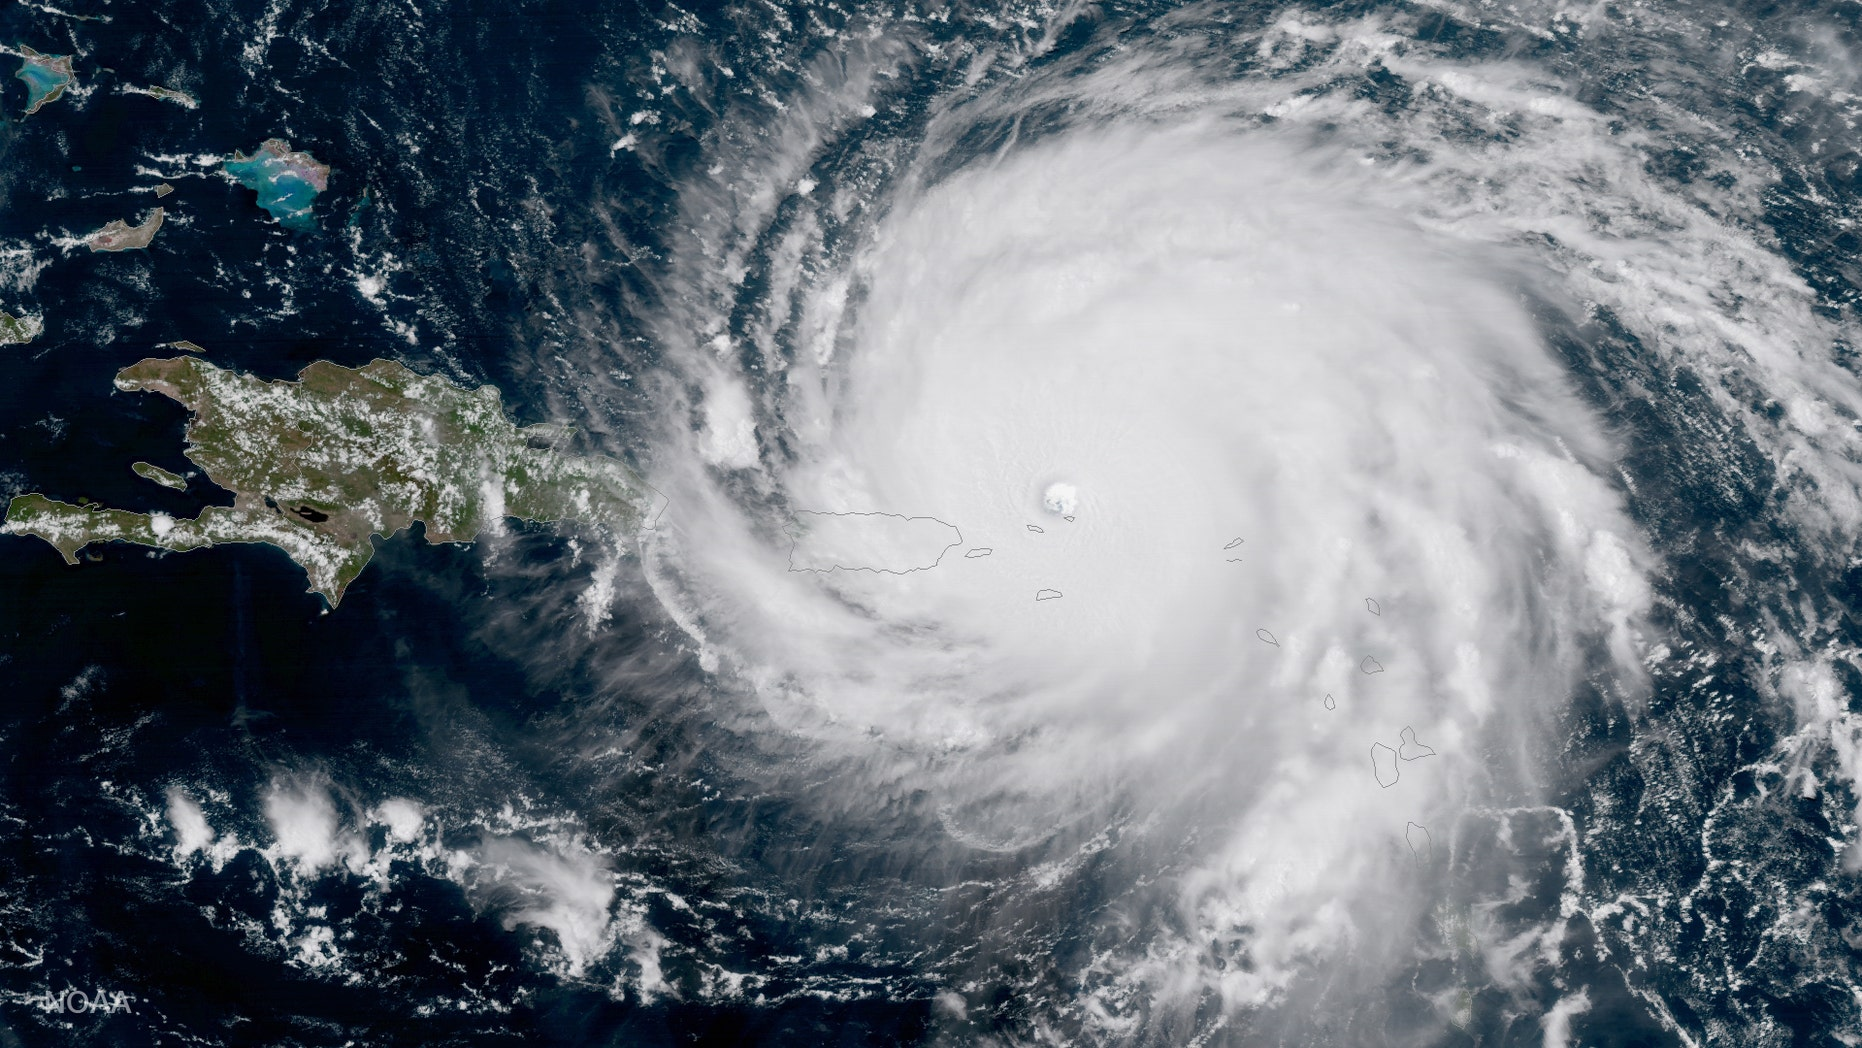 GOES-16 captured this geocolor image of Hurricane Irma — a category 5 storm with winds as high as 185 miles per hour — today at about 3:15 pm (eastern), September 6, 2017. Irma is forecast to remain a powerful category 4 or 5 hurricane during the next couple of days. (Credit: NOAA)